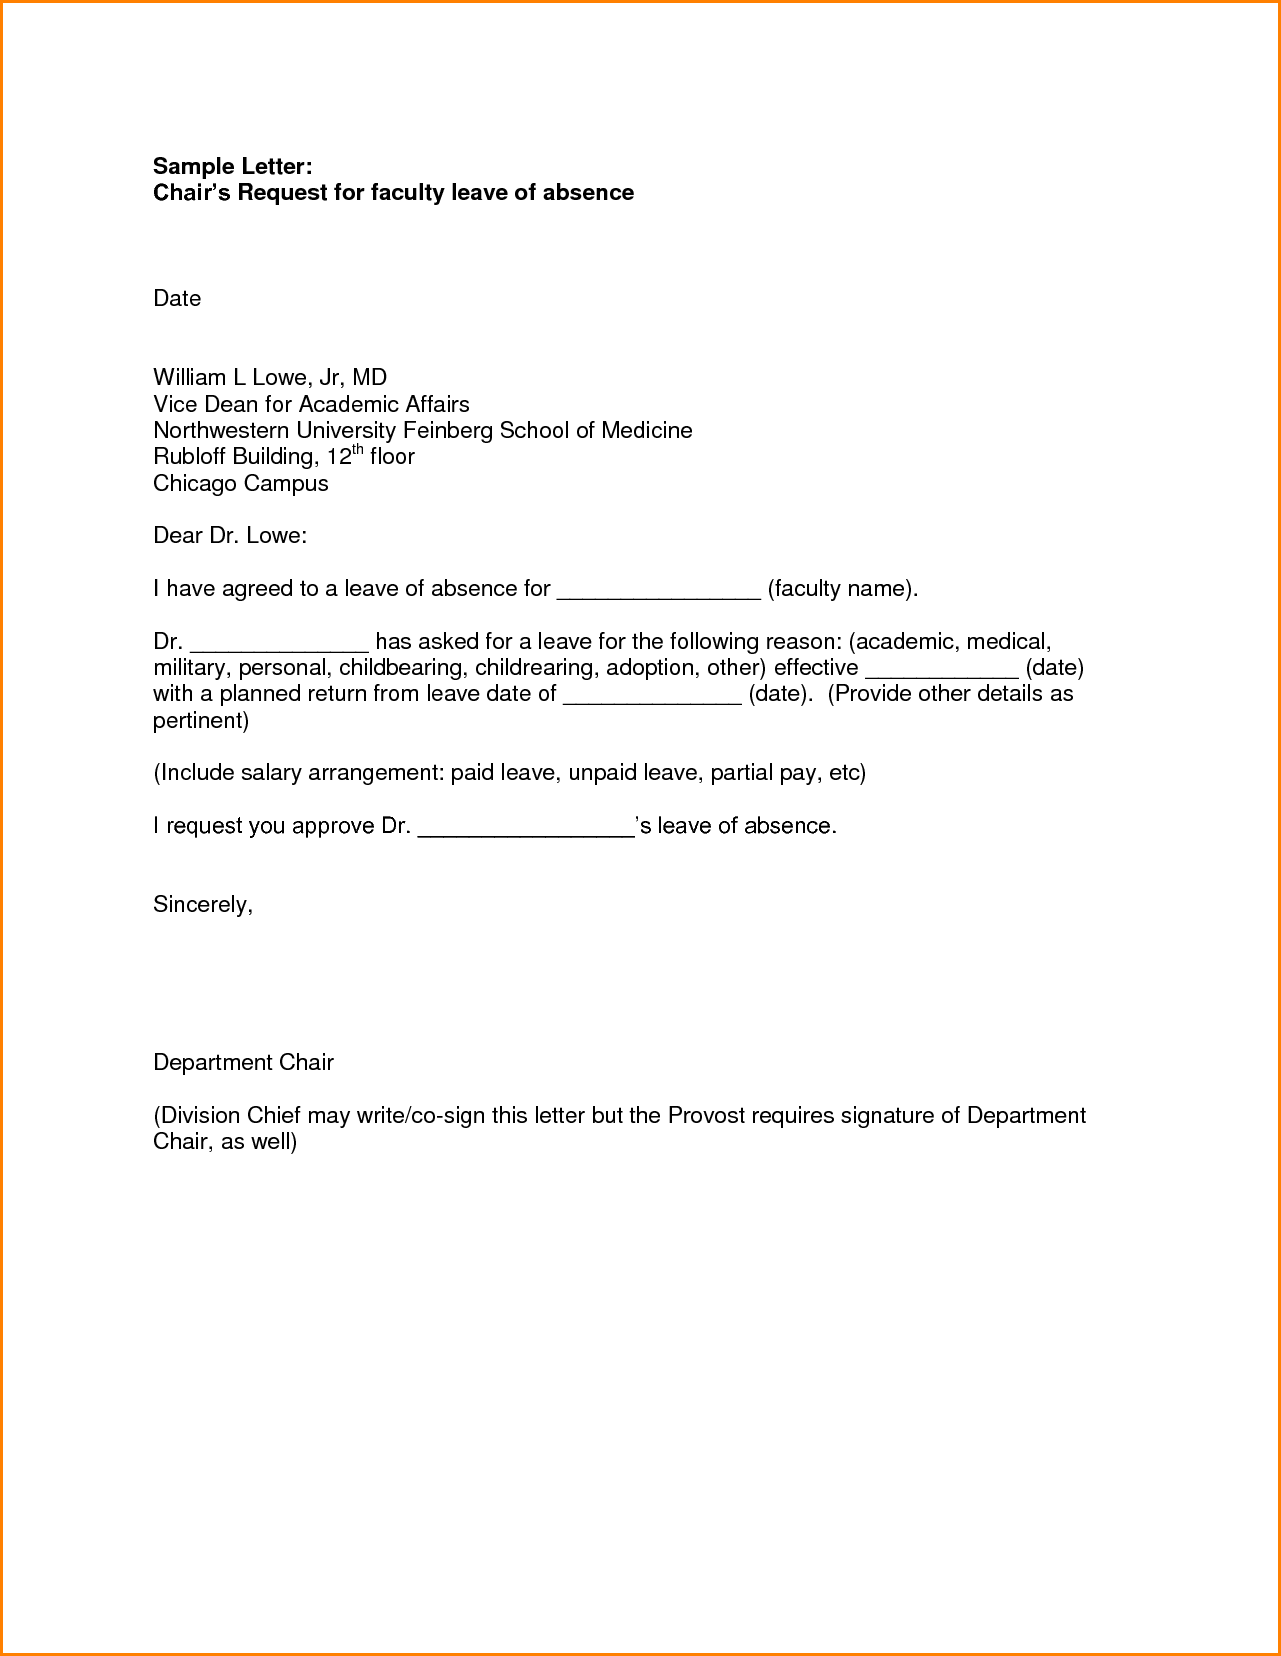 School leave letter format absence request sample medical school leave letter format absence request sample medical application for college illustrationessays web altavistaventures Image collections